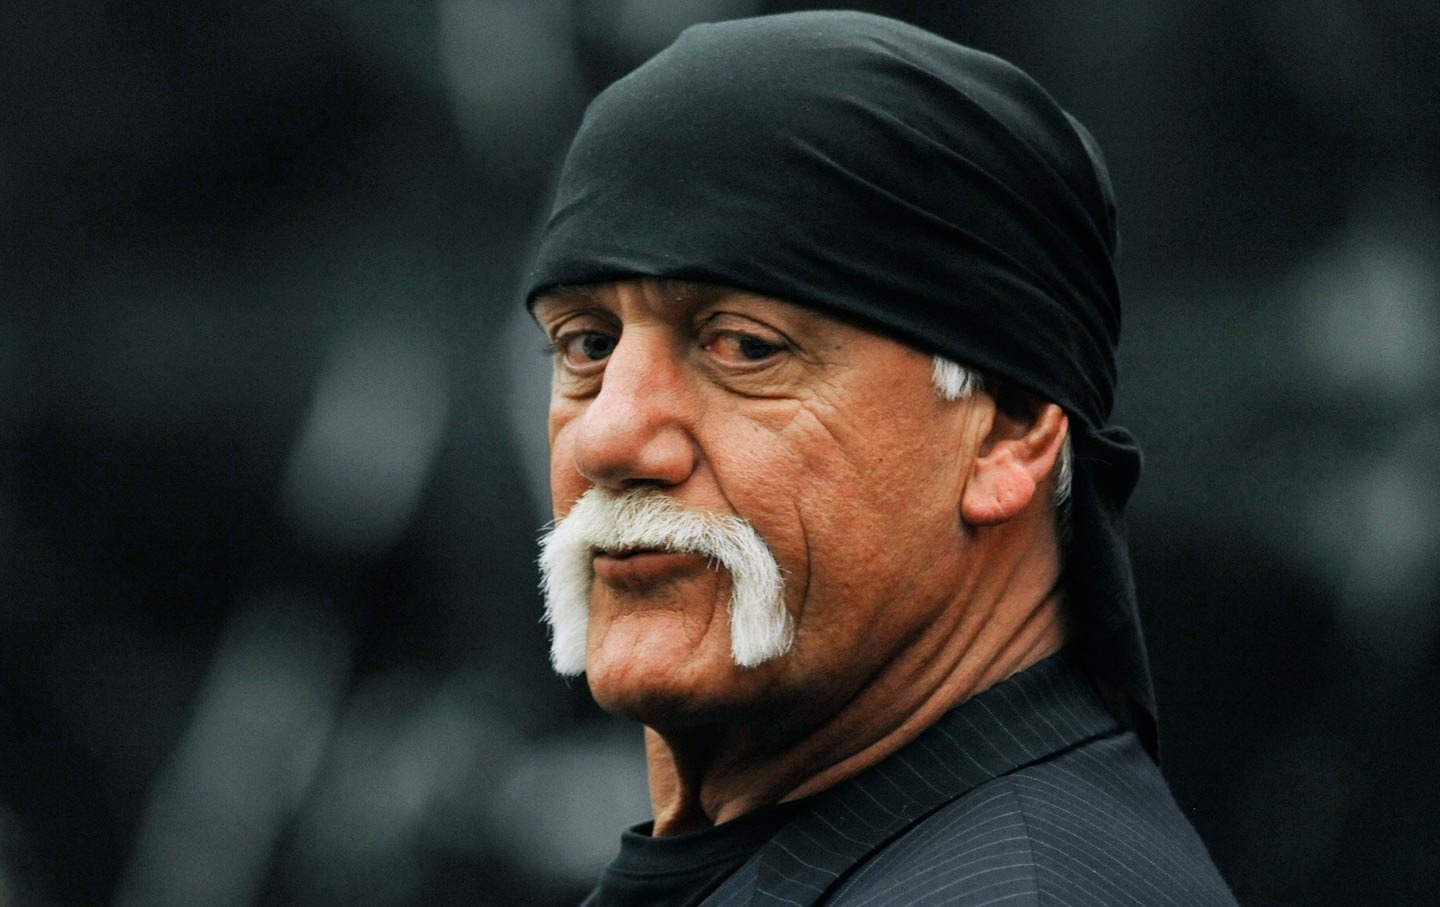 hogan_gawker_trial_ap_img